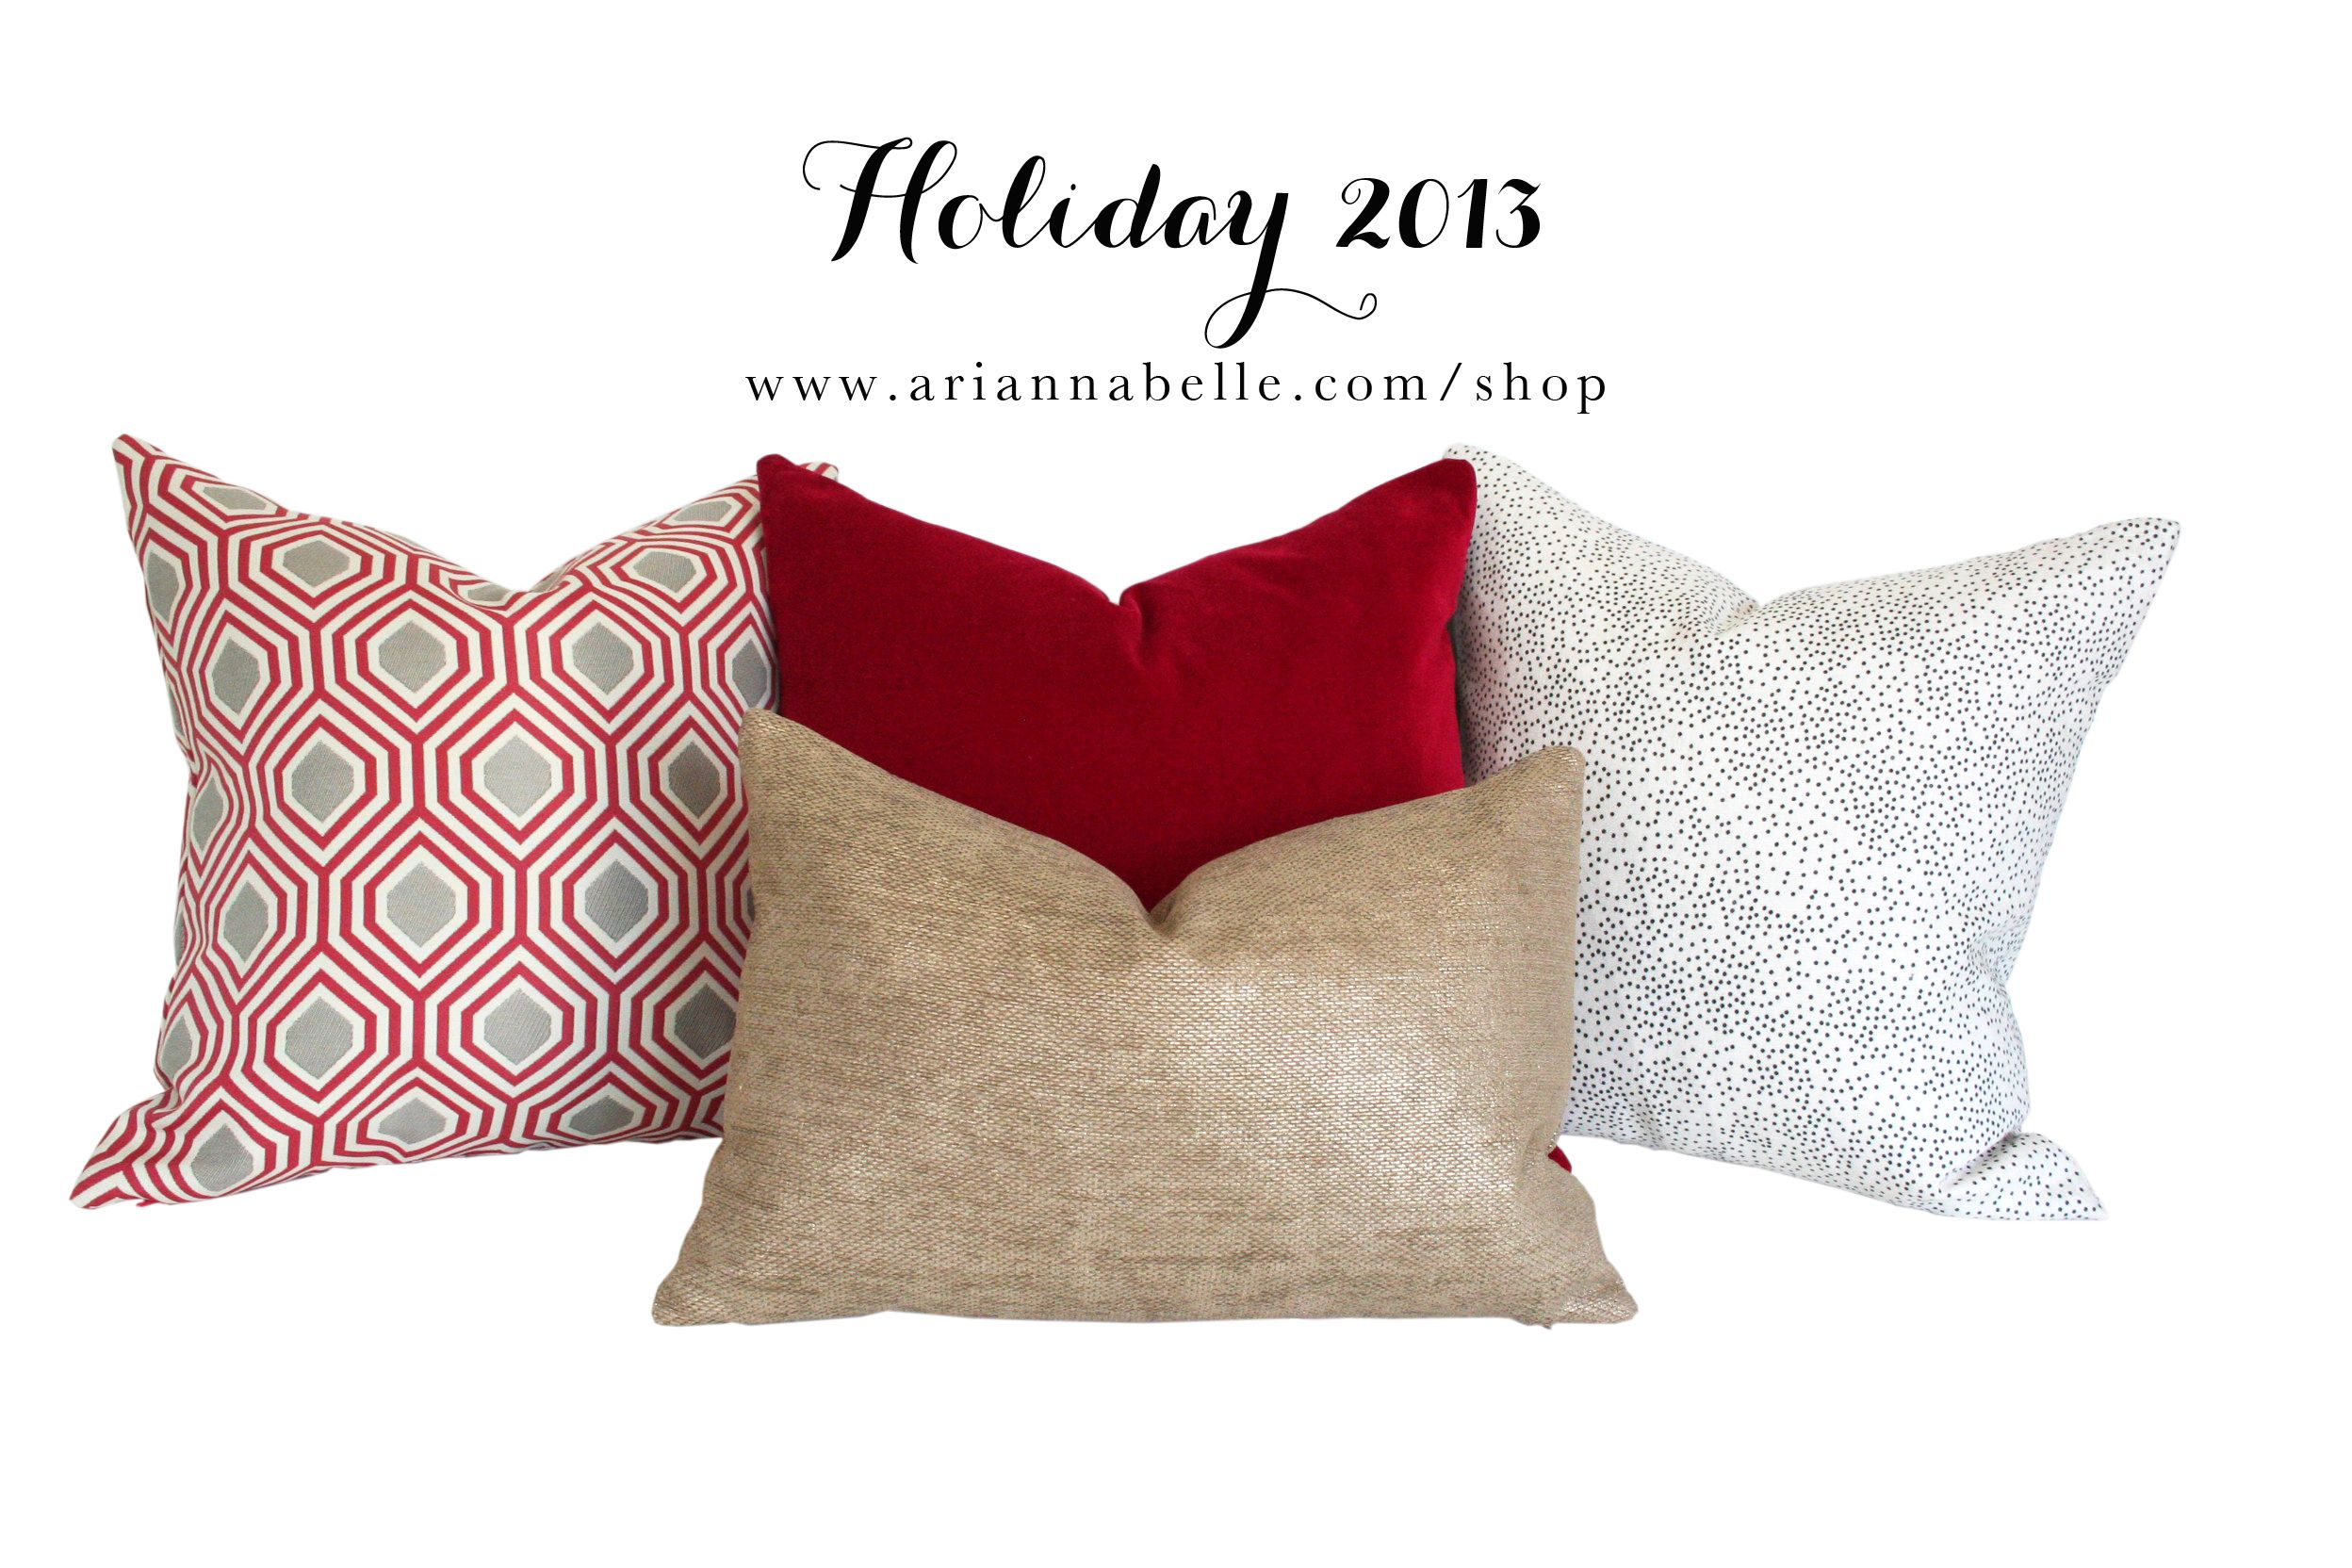 Pillows To Dress Up Your Home For The Holidays But Can